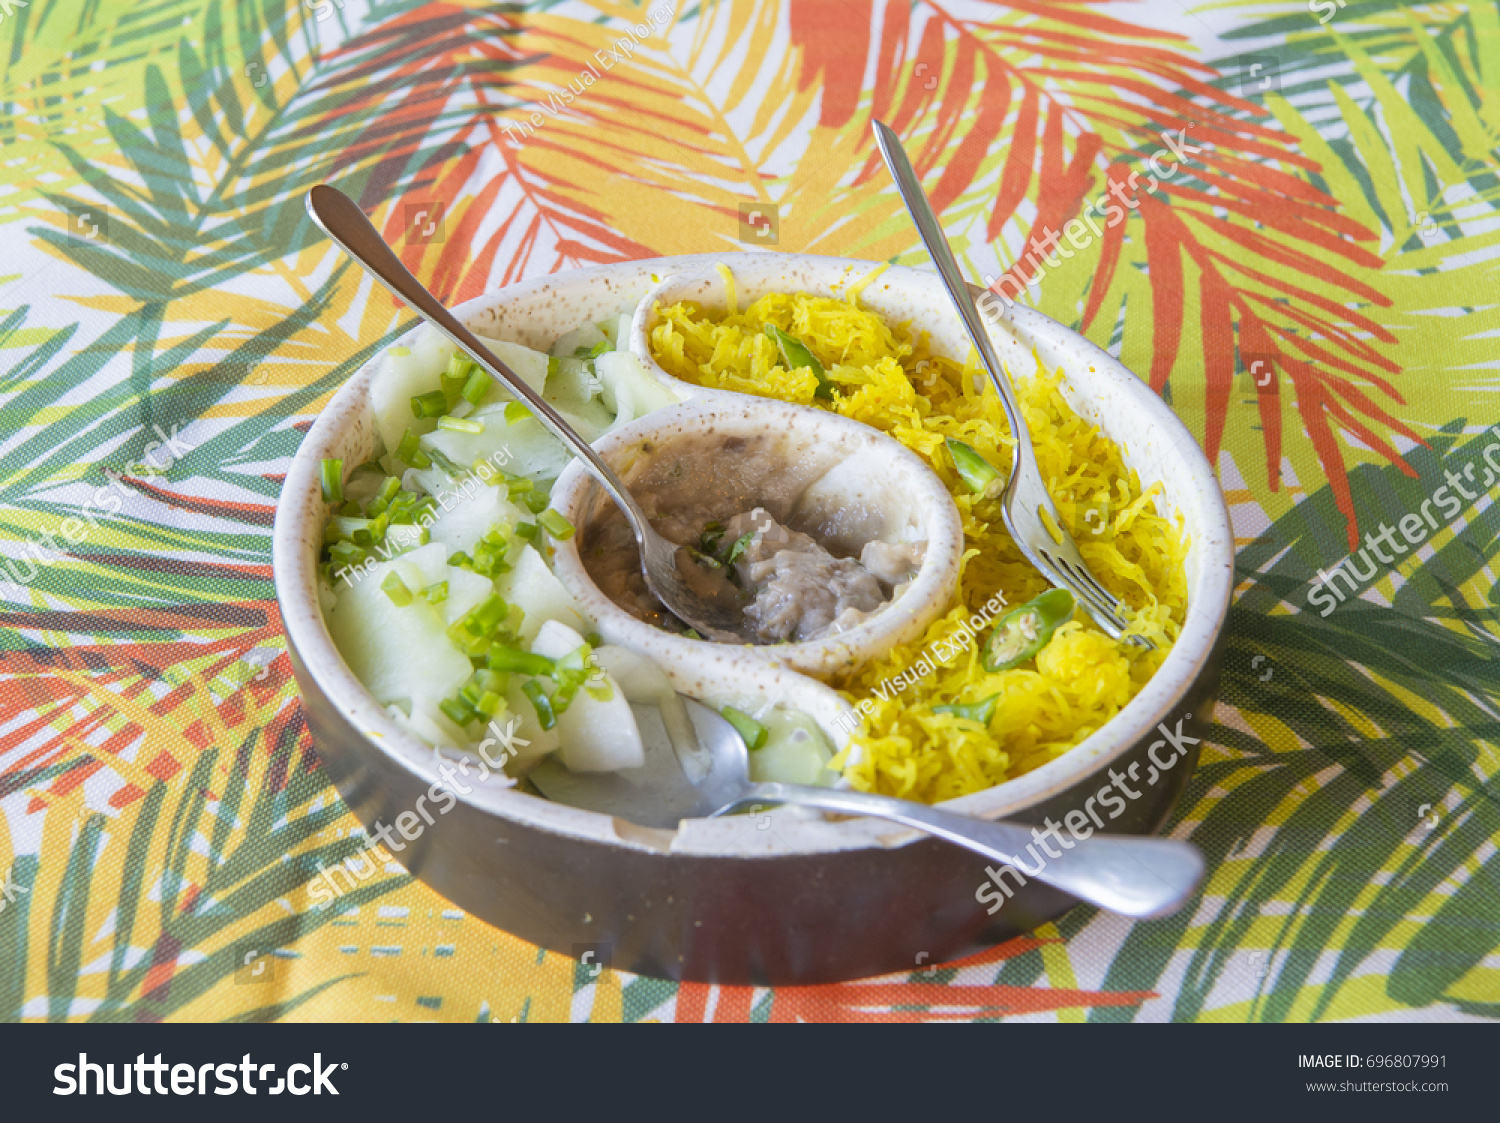 Cuisines Similar To Indian Traditional Mauritian Food Similar Typical Indian Stock Photo